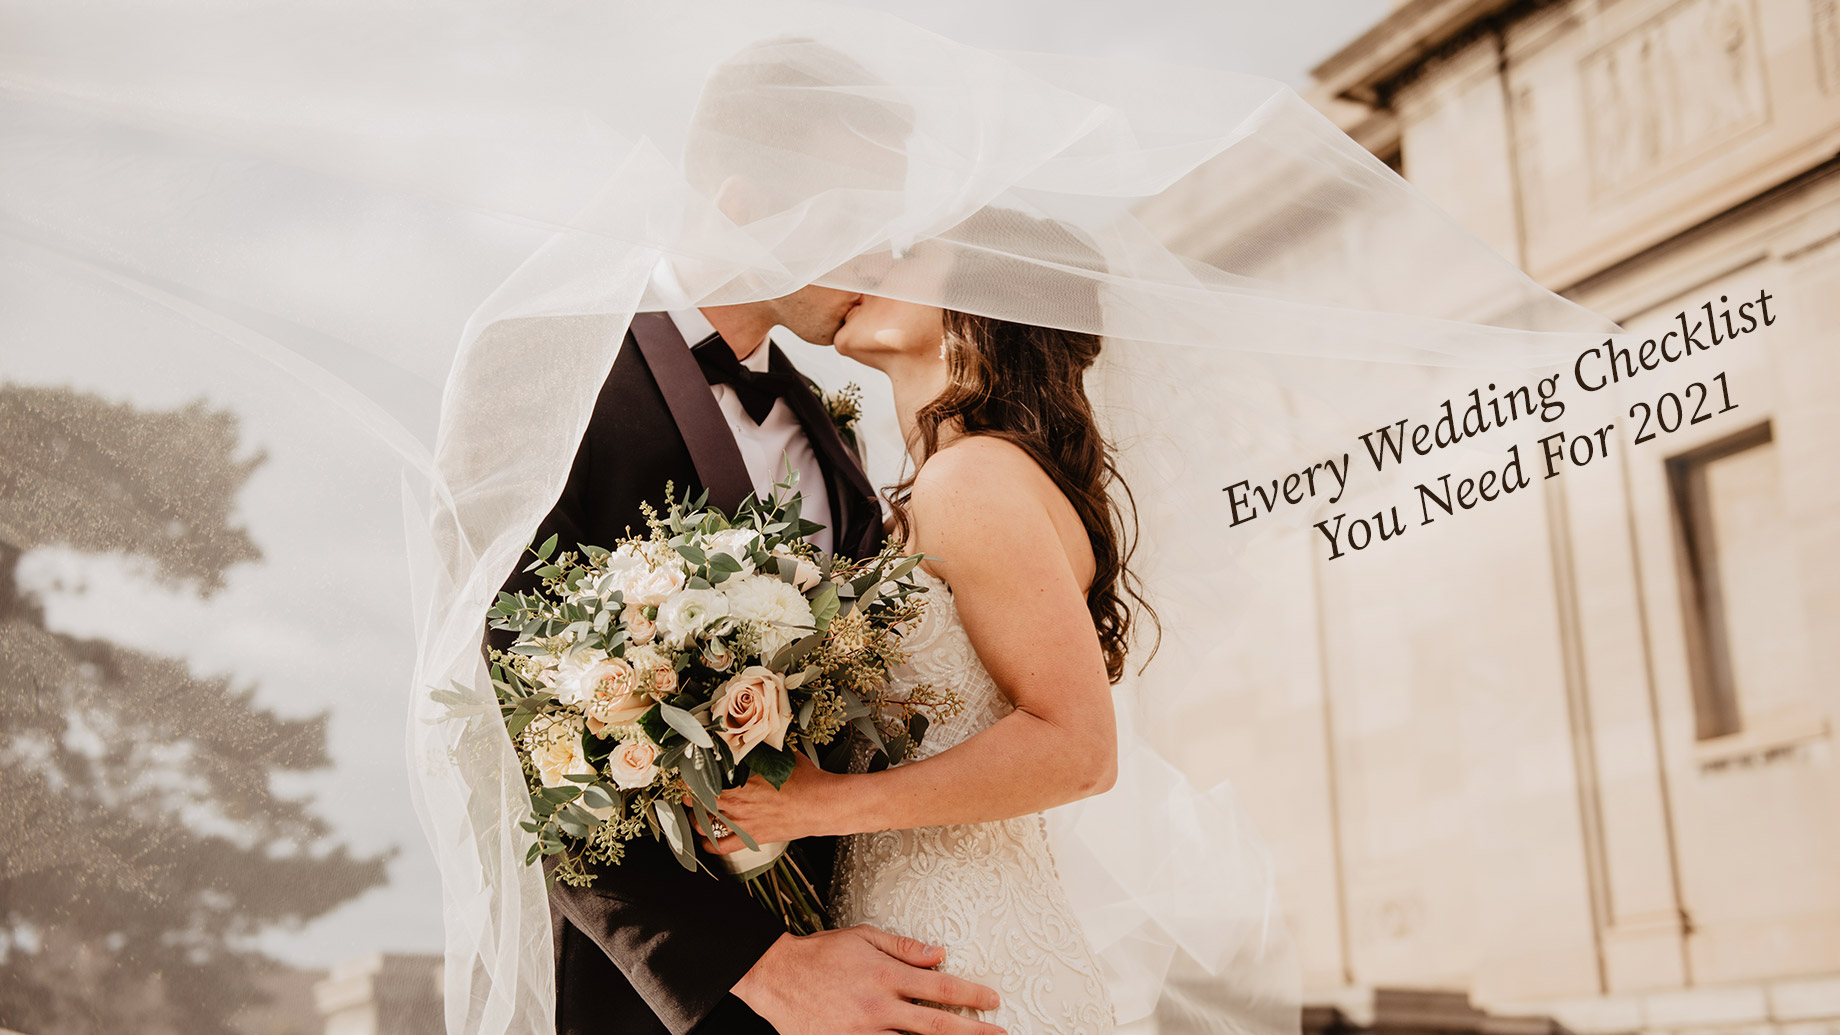 Every Wedding Checklist You Need For 2021